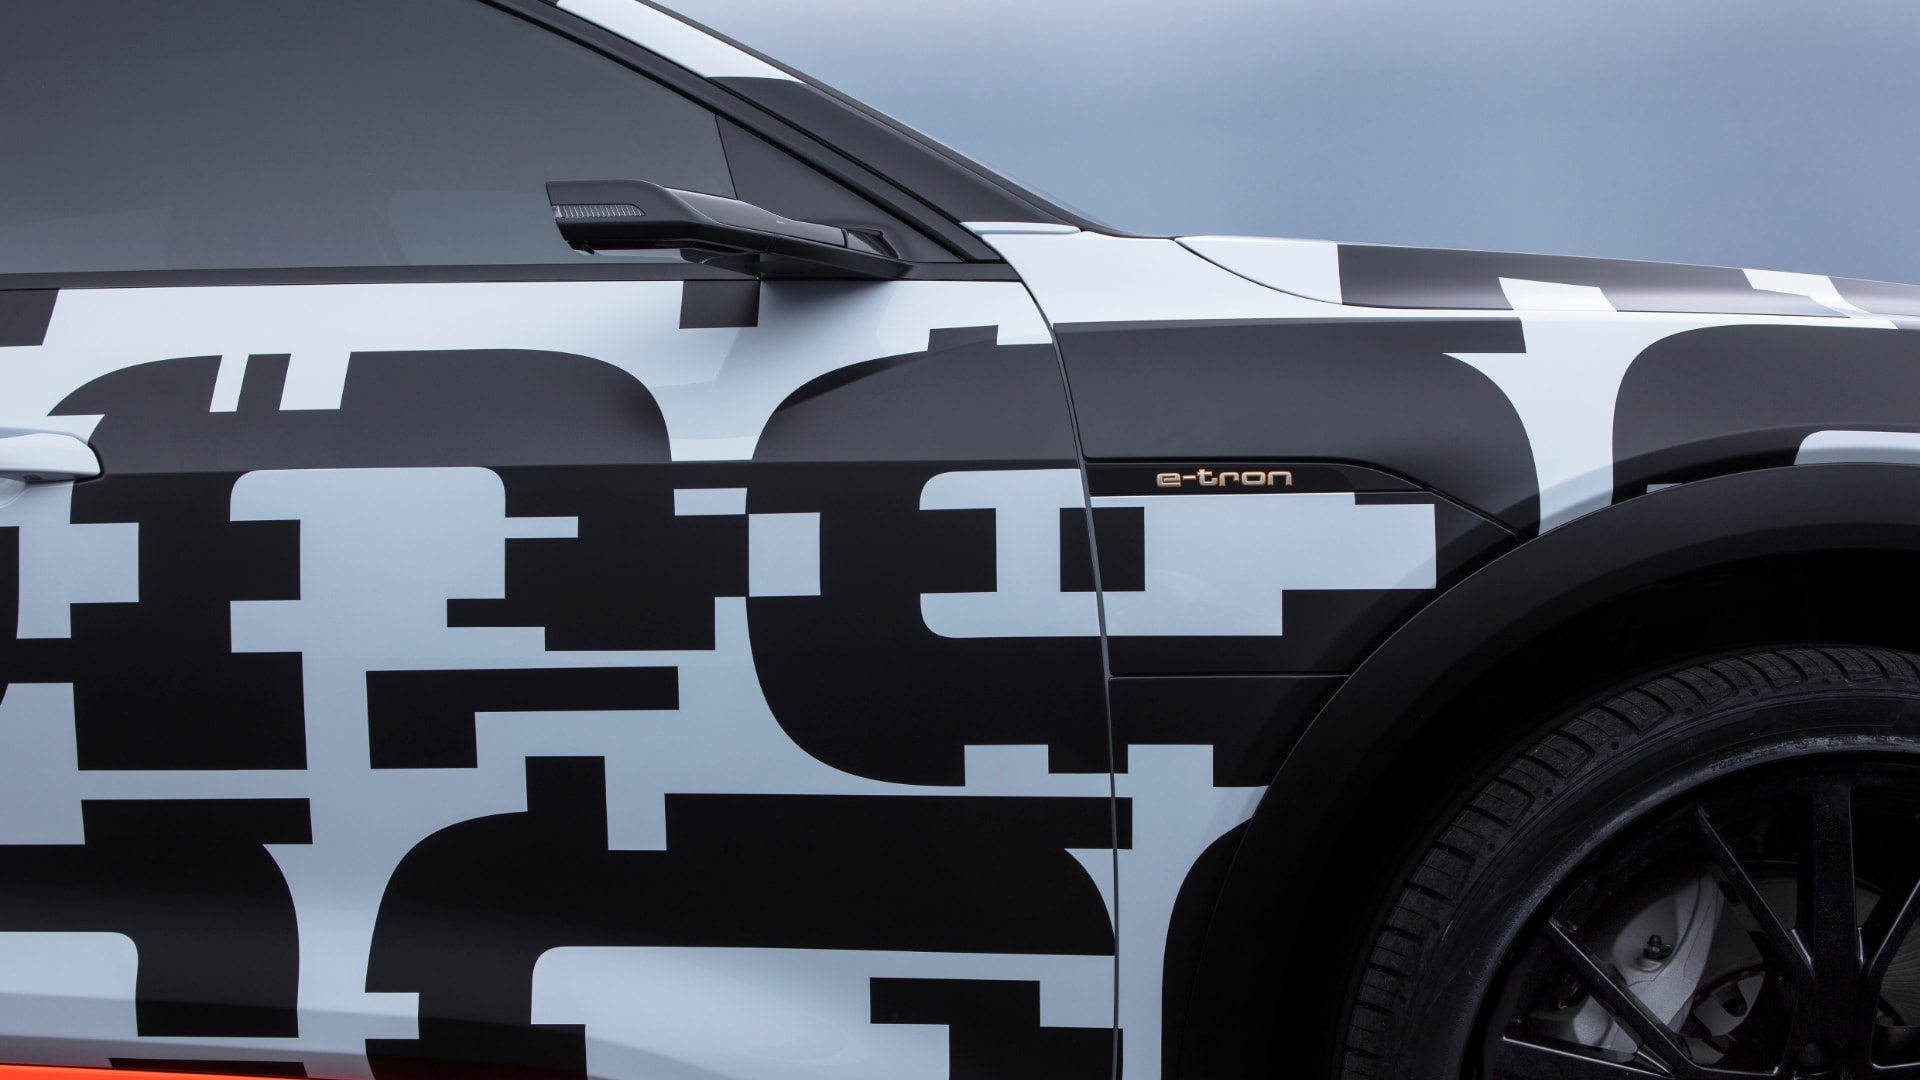 Under the camouflaged exterior hides a sporty SUV with room for five people, as well as plenty of luggage. The range, suitable for long distances, and an integrated charging offer allow the customer to drive under electric power alone – without having to compromise.